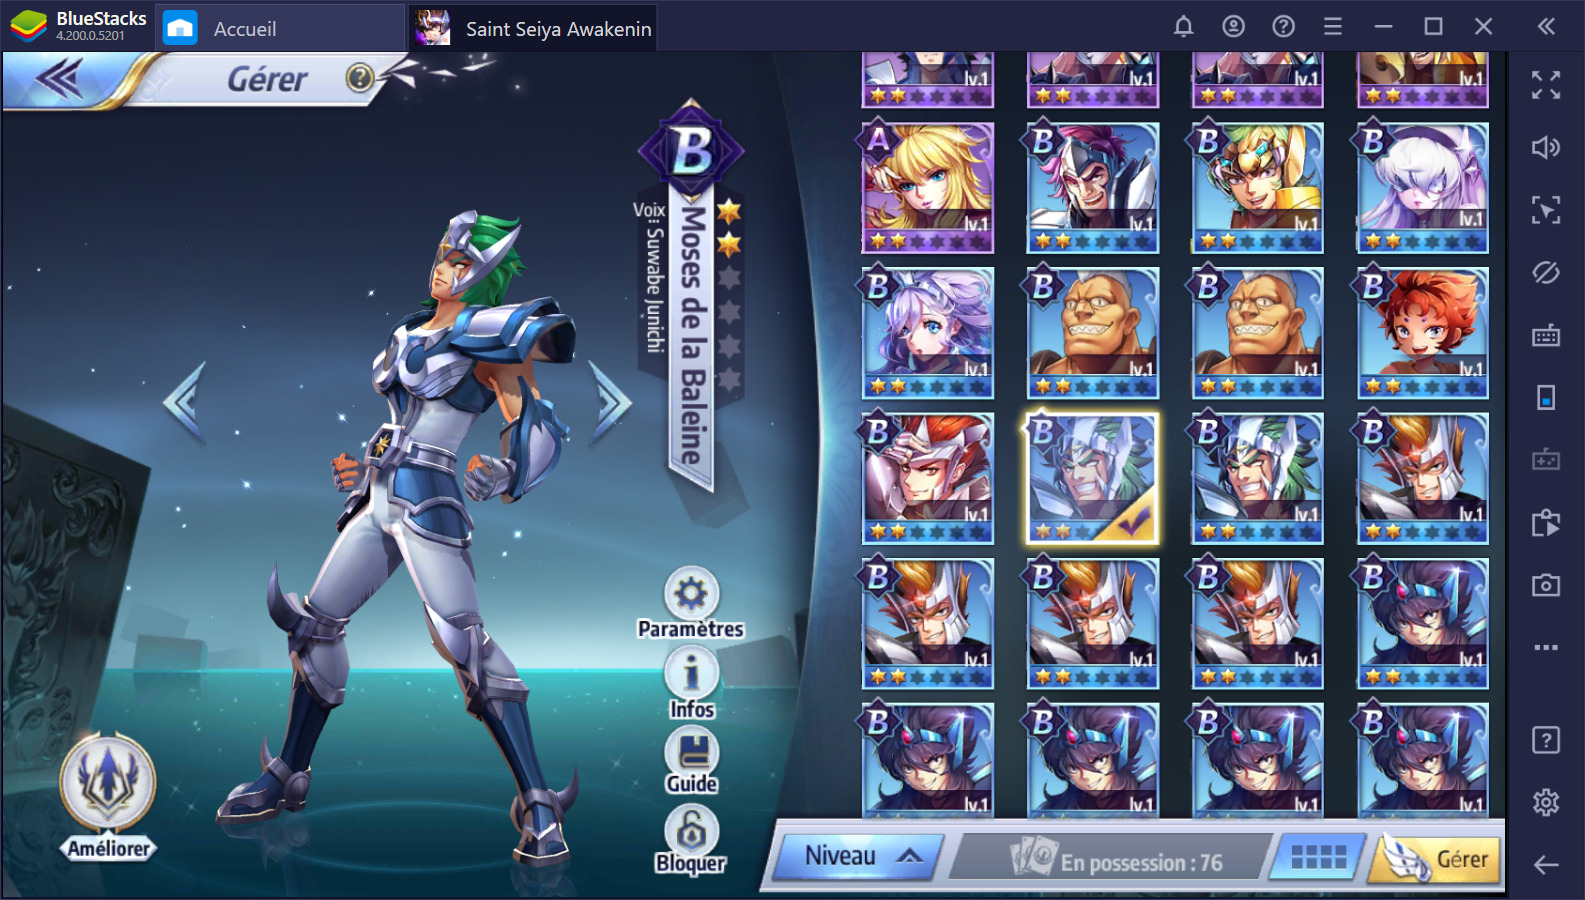 Saint Seiya Awakening sur PC Guide sur le PvP